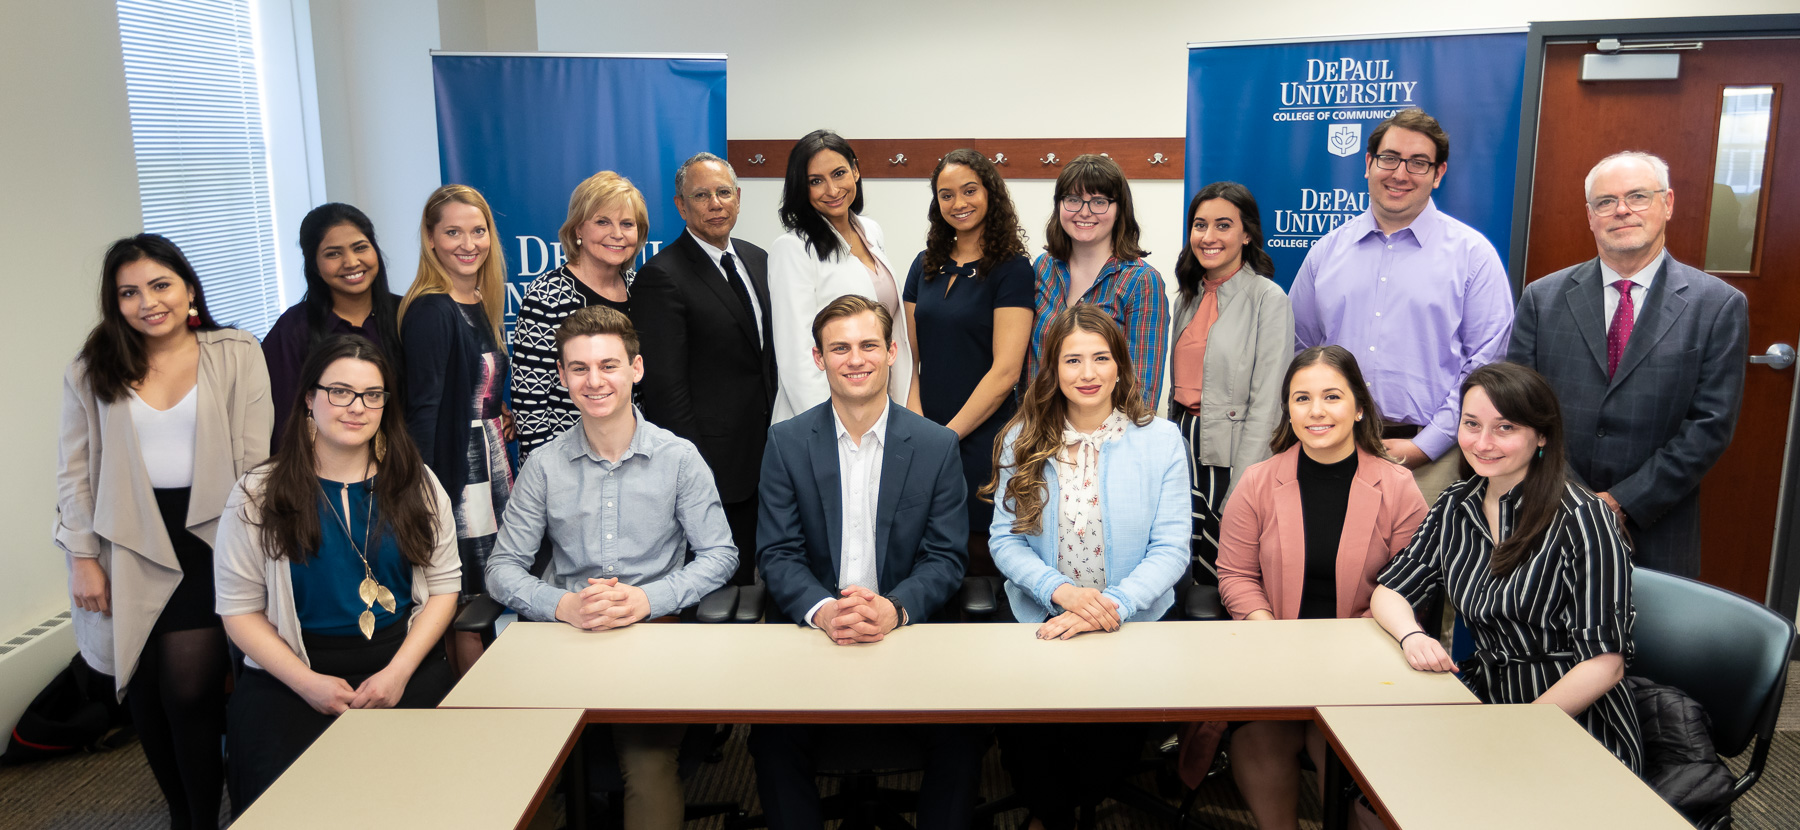 The distinguished journalists along with College of Communications journalism students. (DePaul University/Jeff Carrion)